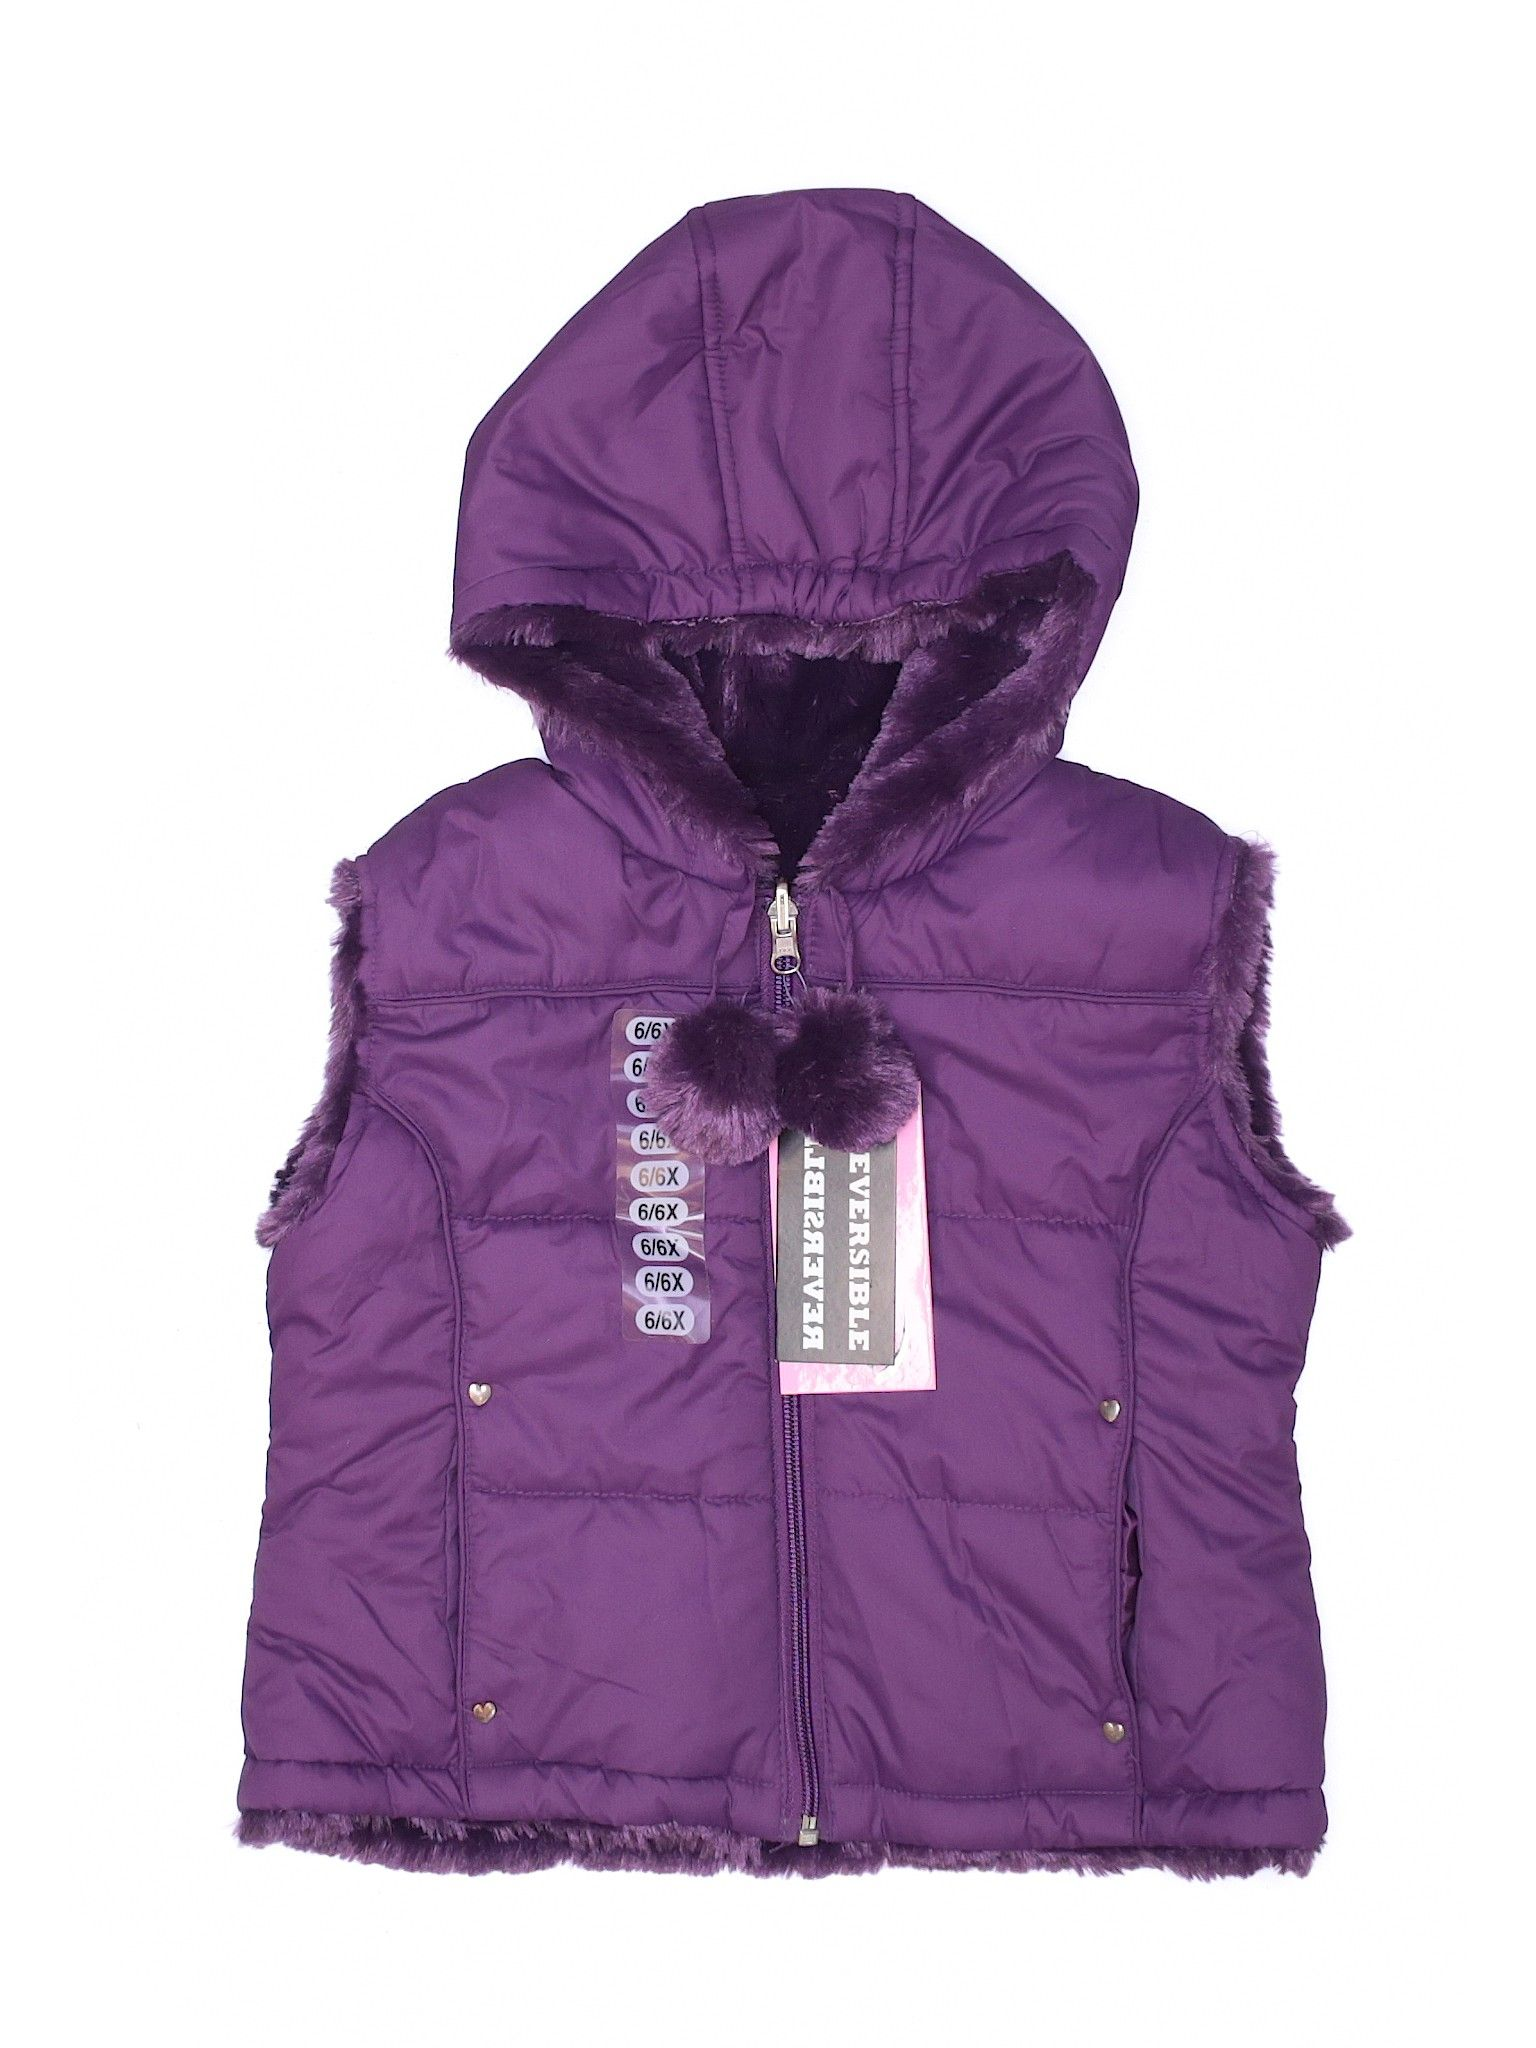 Kc Collections Vest 6x Purple Girl S Jackets Outerwear Outerwear Jackets Second Hand Clothes Girls Jacket